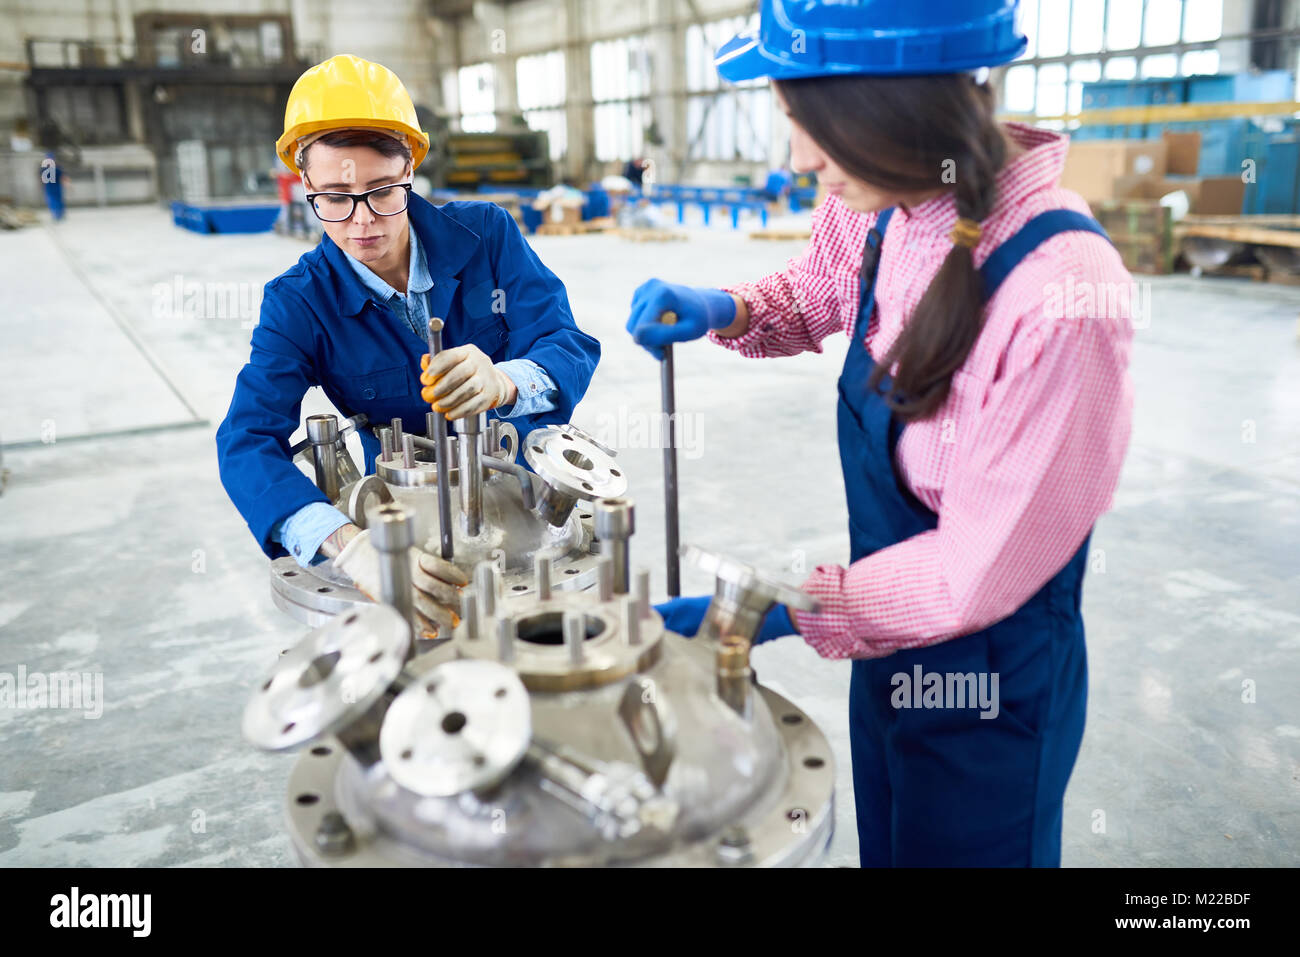 Portrait of two women woman wearing hardhats and uniform working with machine units at modern plant, copy space - Stock Image